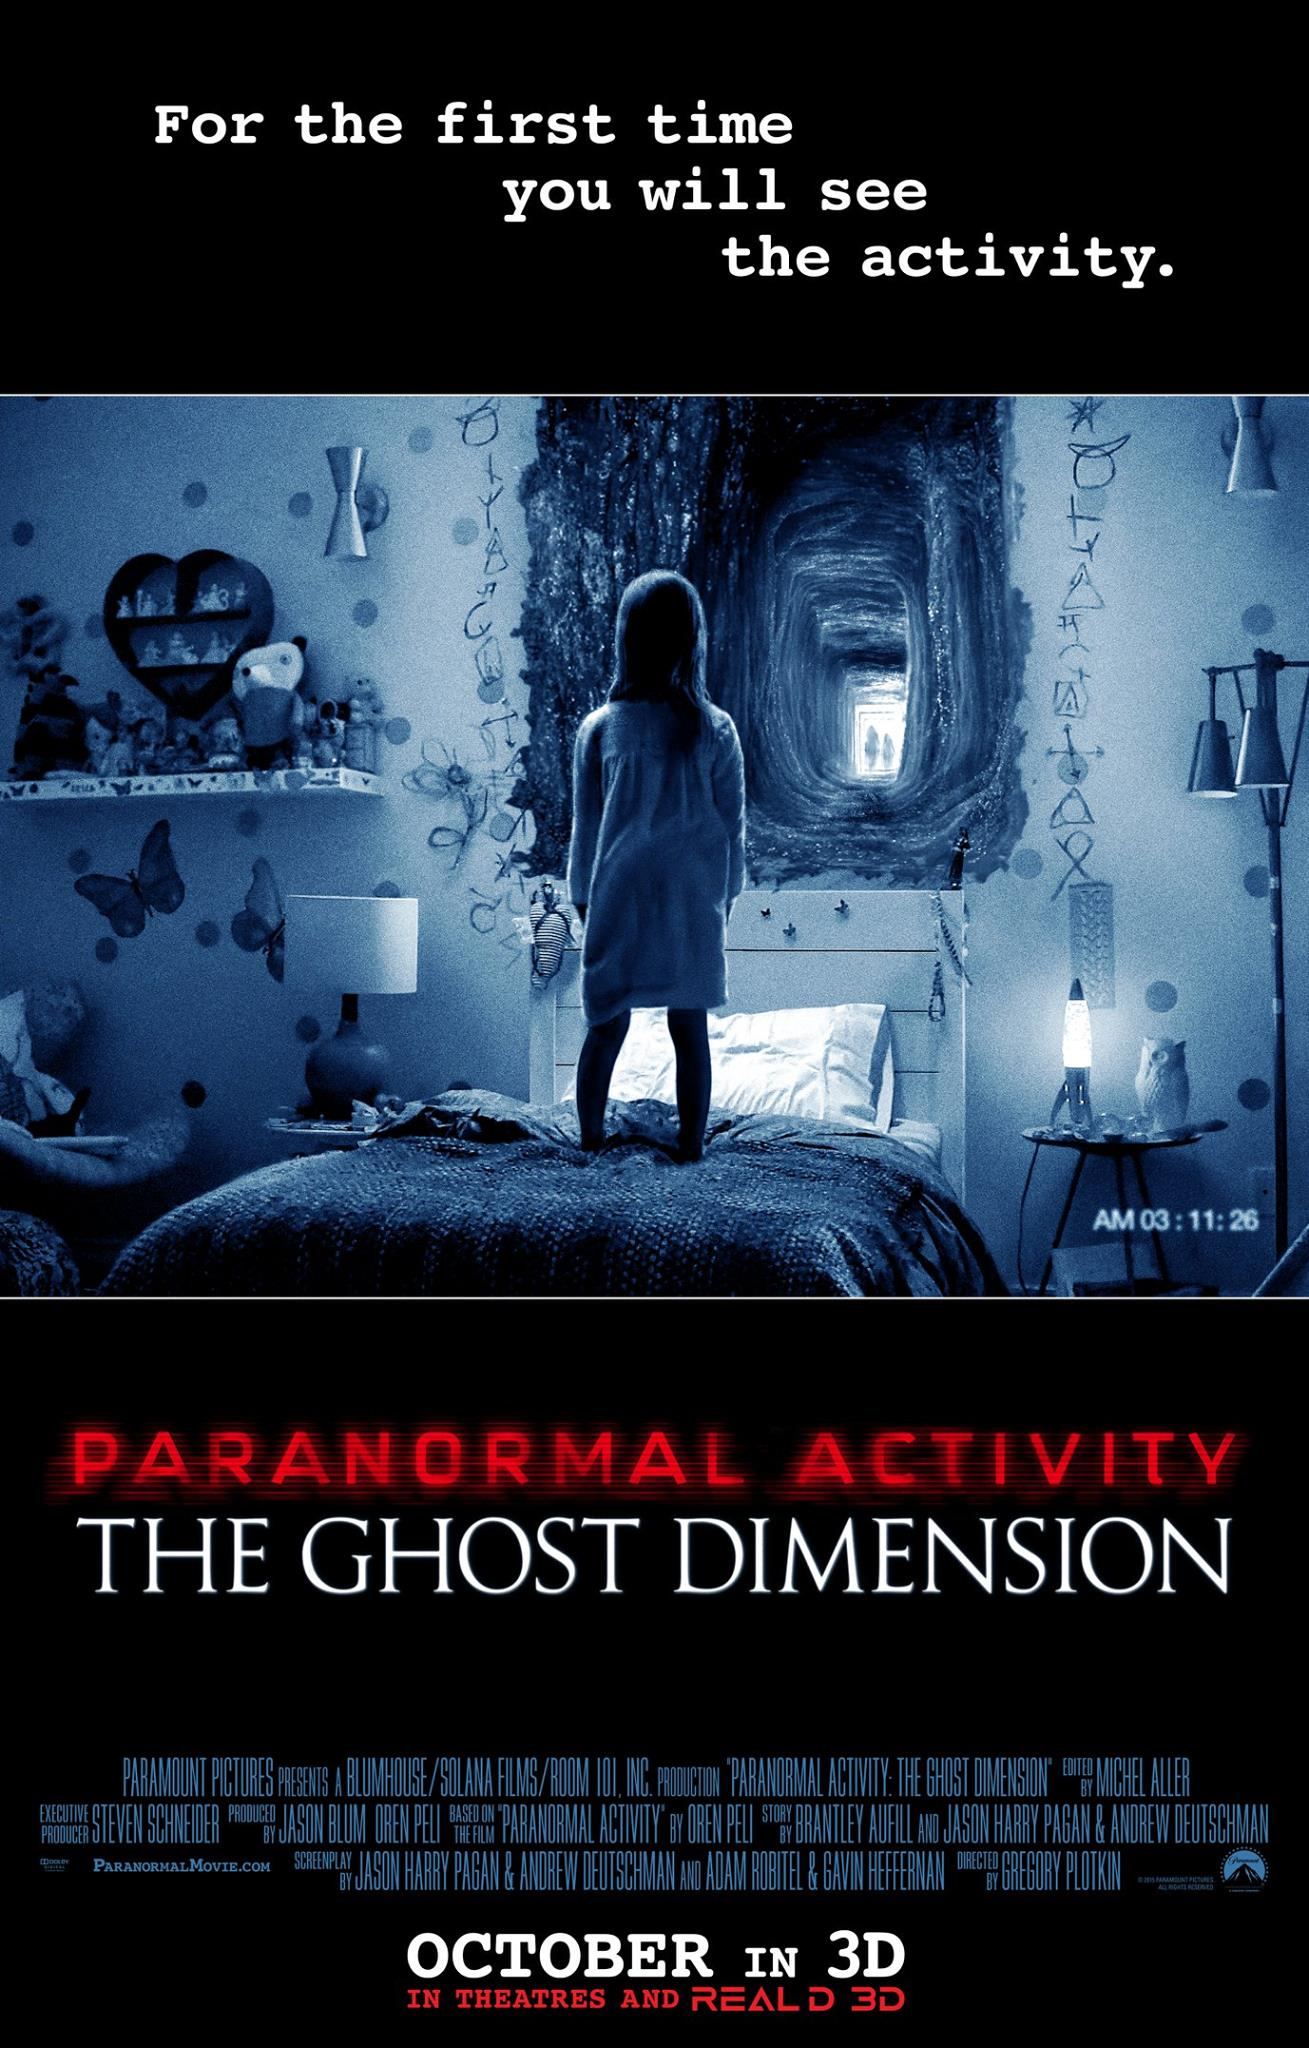 new-motion-poster-for-paranormal-activity-the-ghost-dimension